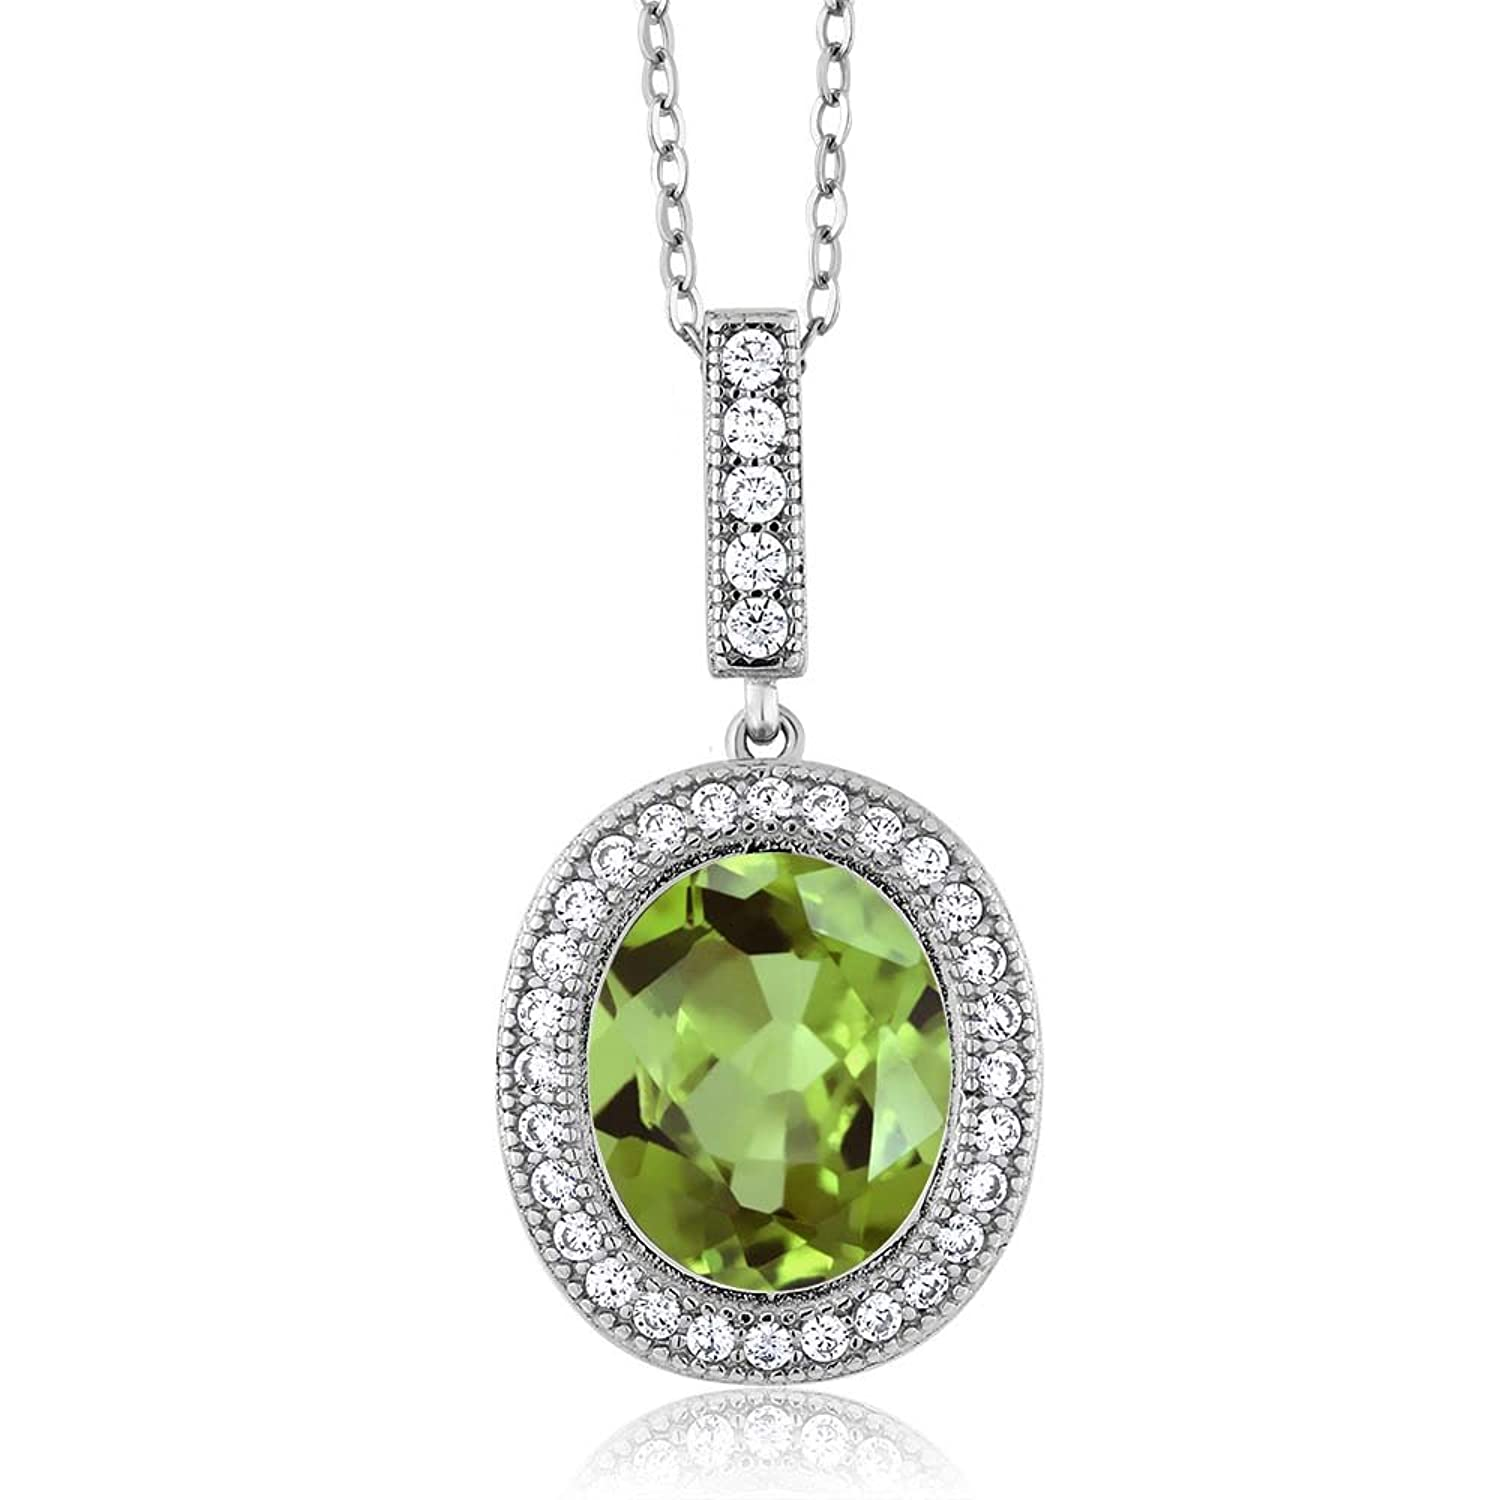 Sterling Silver Oval Green Peridot Pendant Necklace ( 5.31 cttw, With 18 Inch Silver Chain)